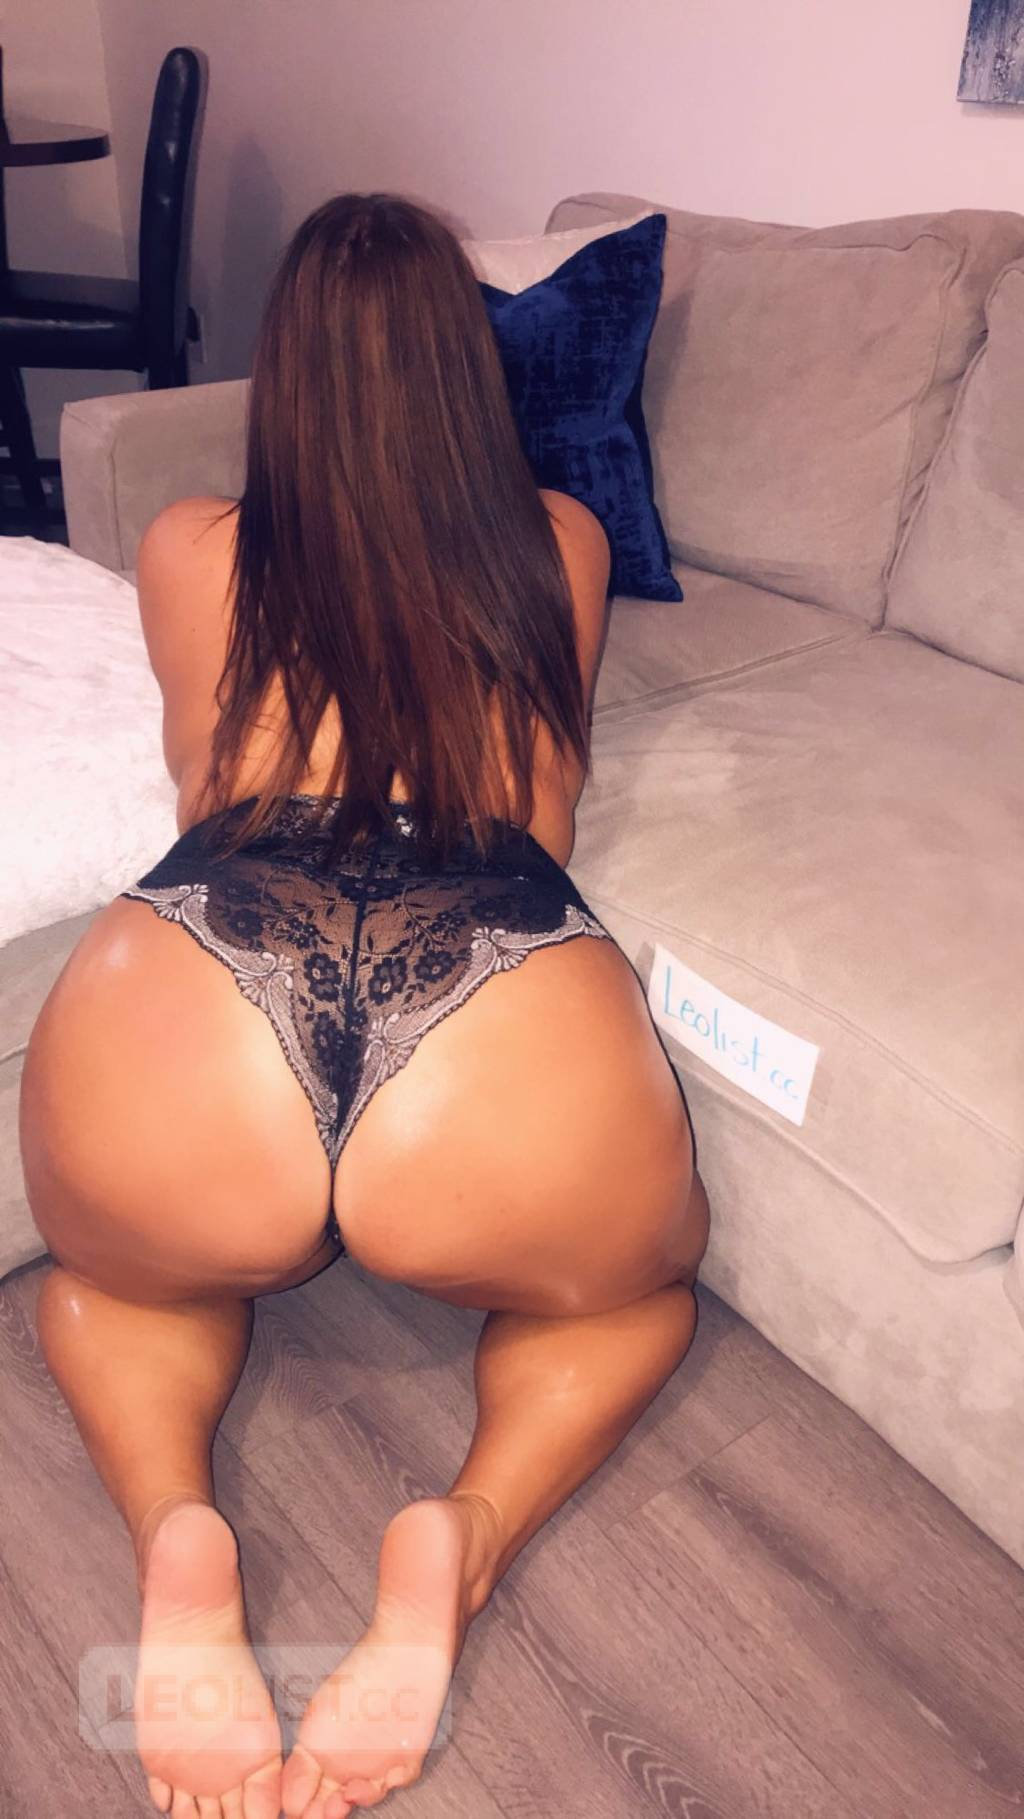 Metrotown SEXY BBW! Incall and Outcall